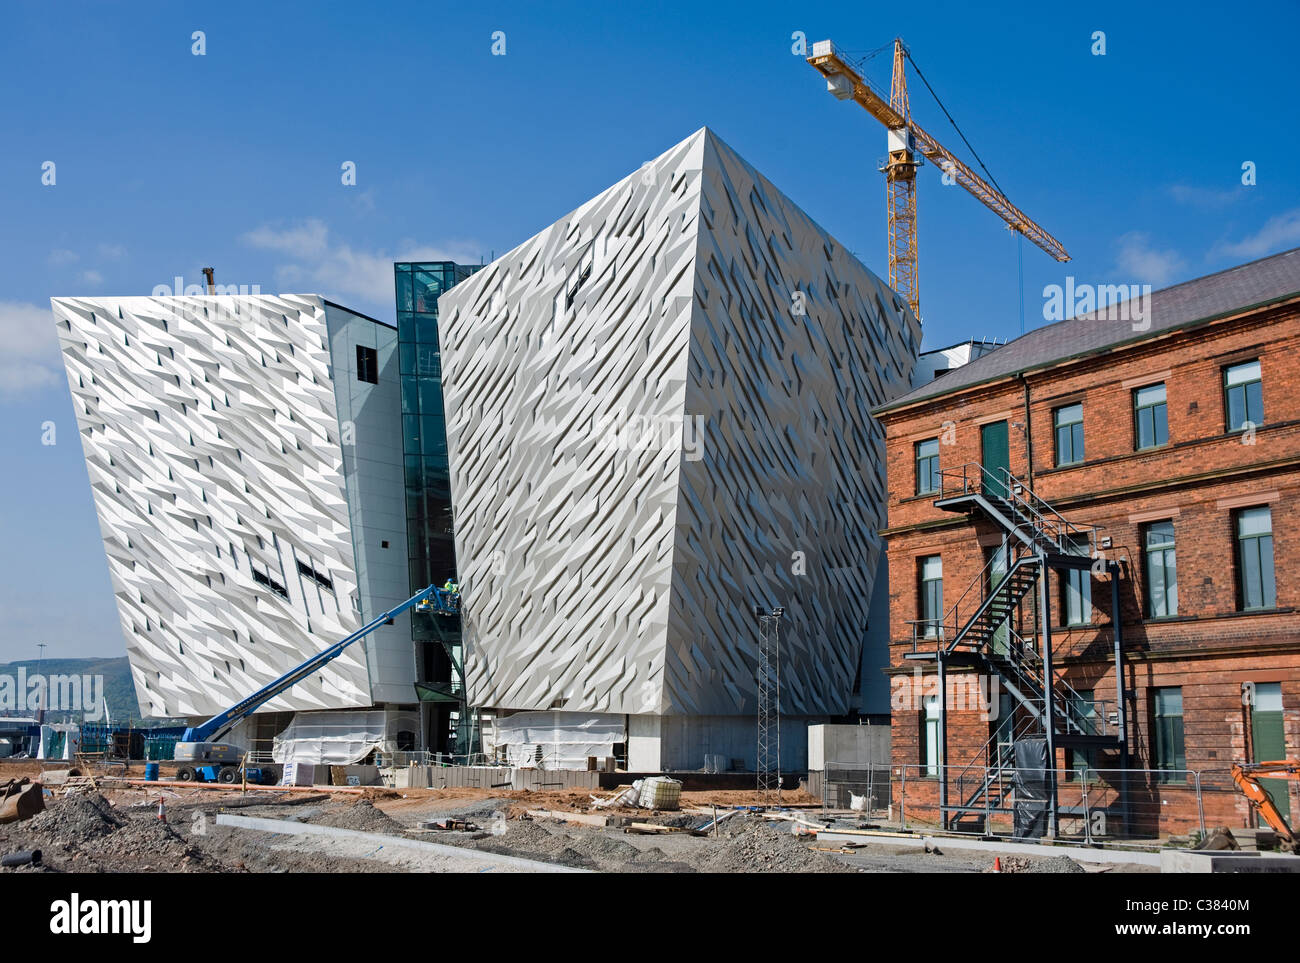 The new Titanic Museum under construction in Belfast, the original Titanic drawing office is on the right. - Stock Image